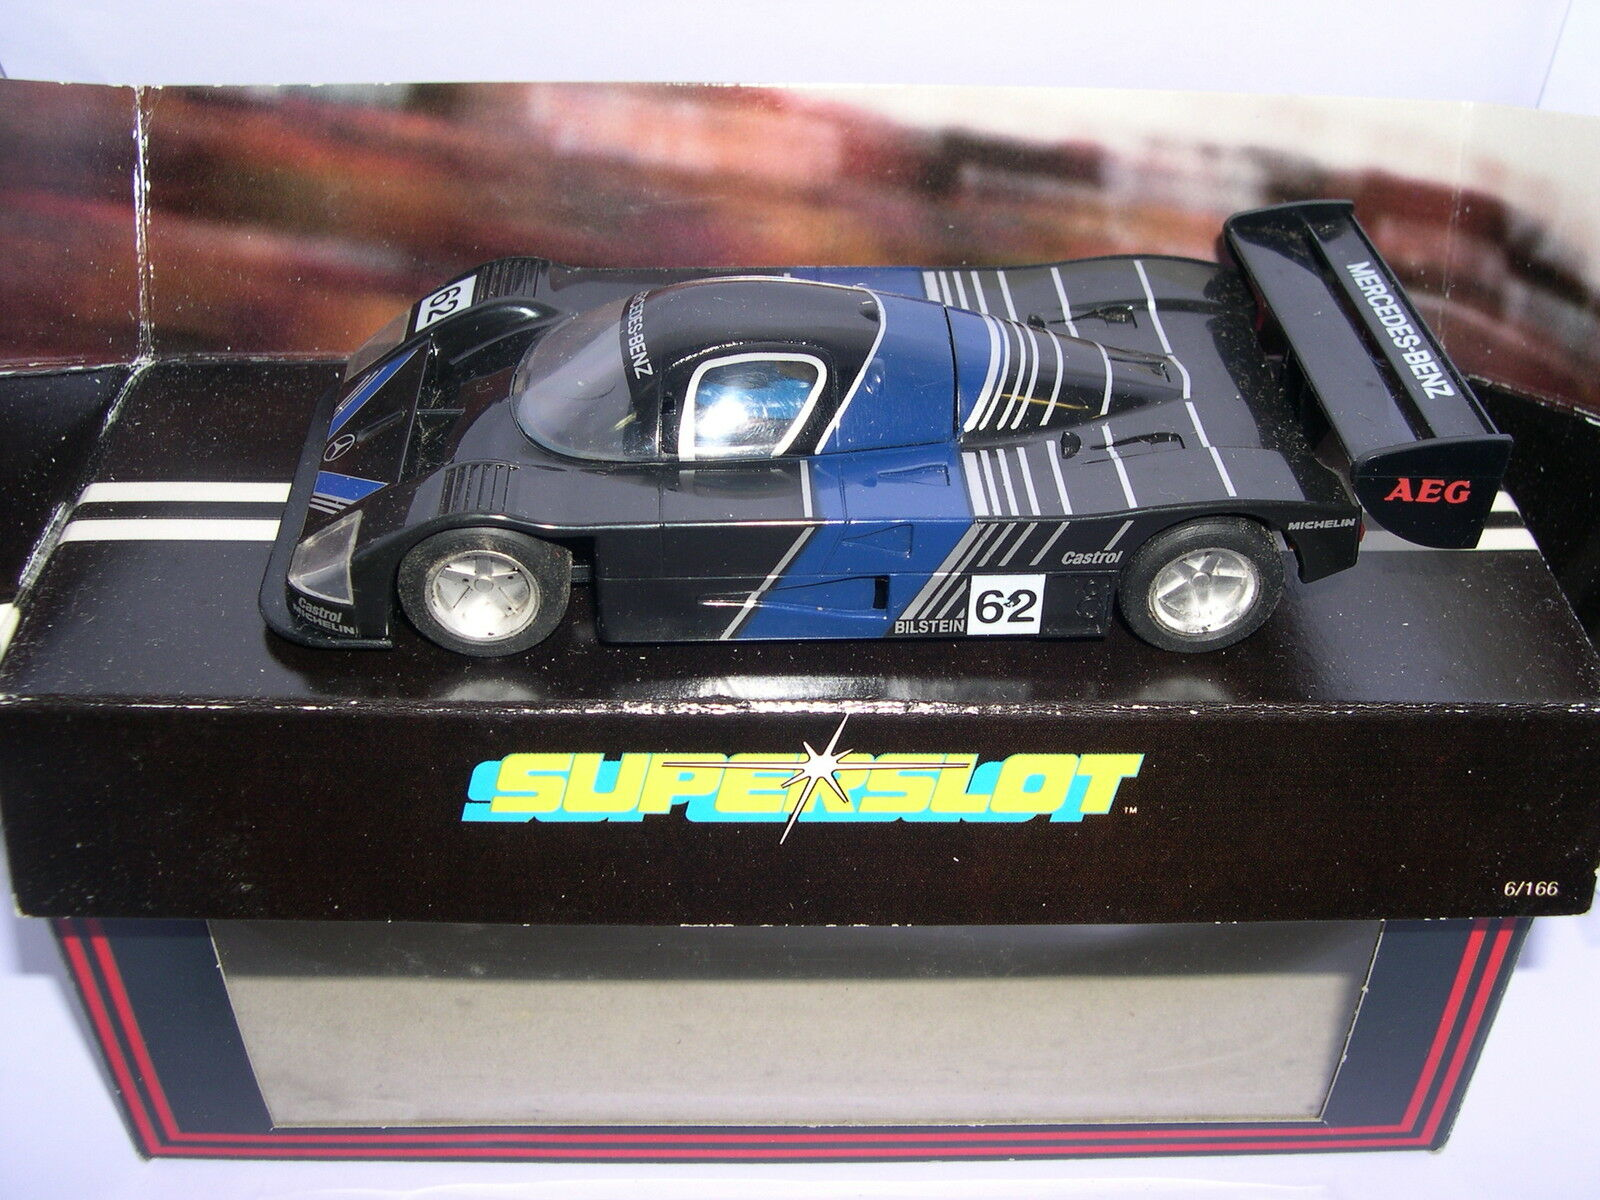 SUPERSLOT C299 MERCEDES SAUBER AEG DOESN'T MIRRORS SCALEXTRIC UK MB